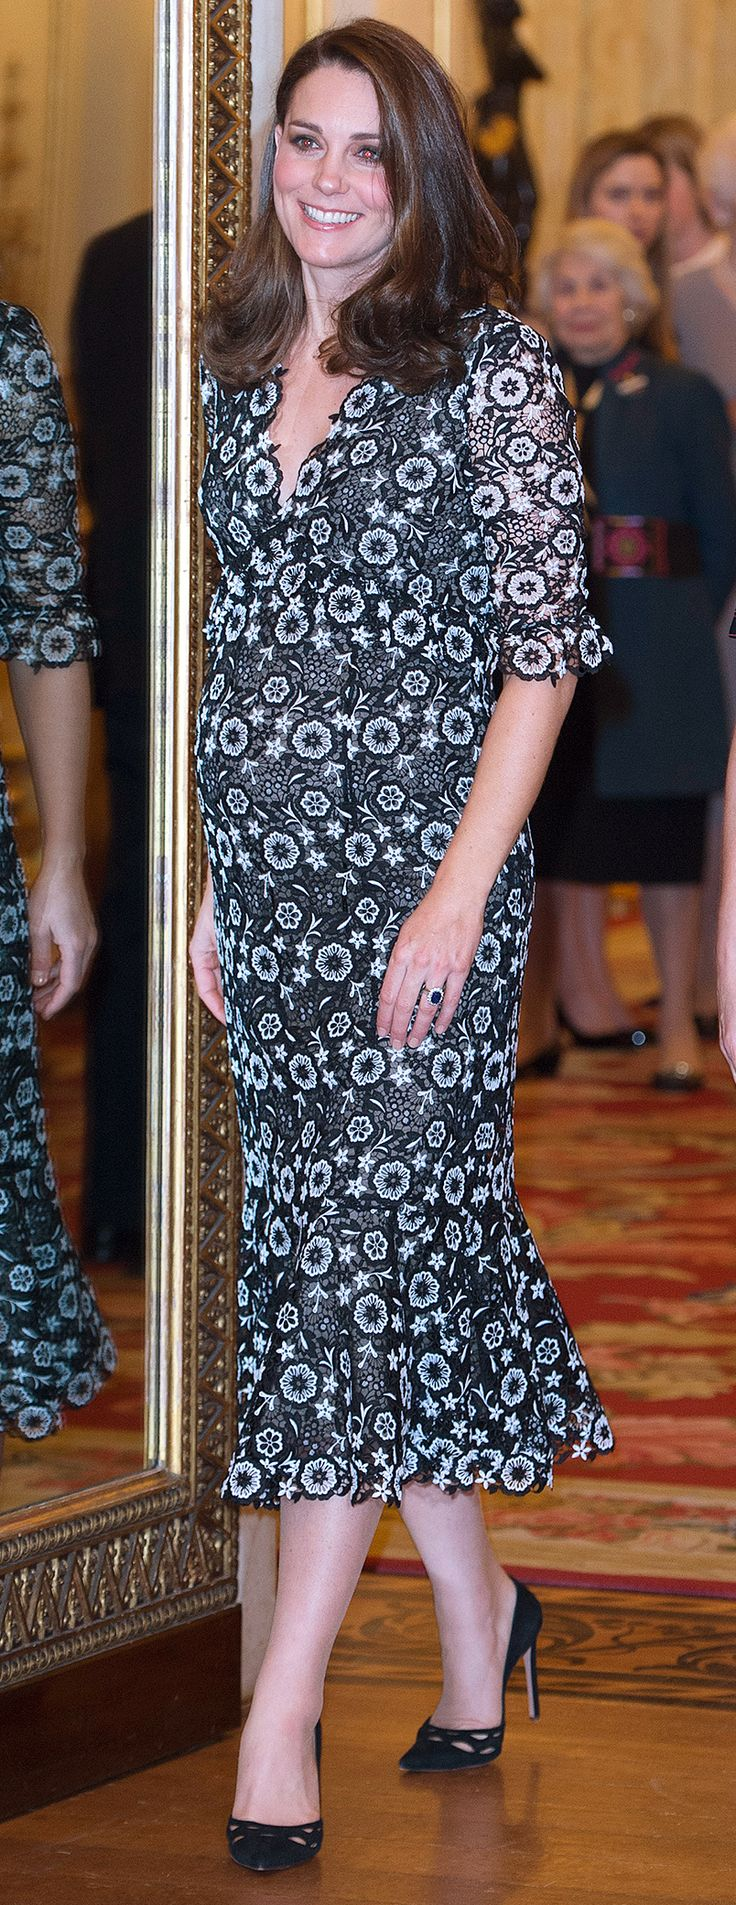 Look of the Day - Kate Middleton from InStyle.com